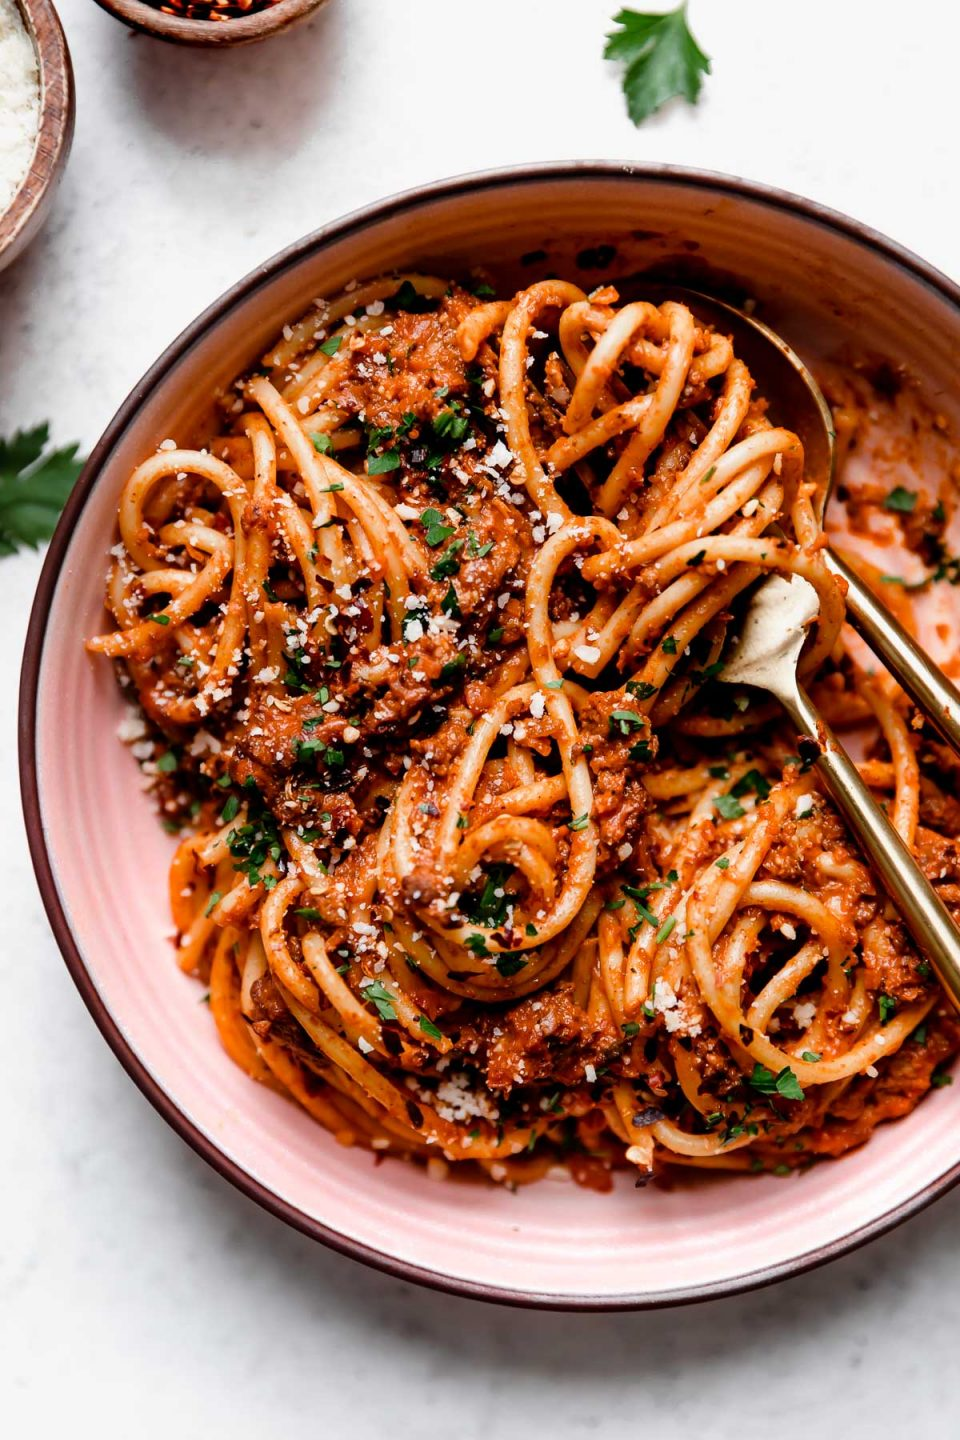 Bolognese sauce tossed into bucatini noodles, served in a pink pasta bowl with gold flatware. The pasta bolognese is topped with grated cheese, chopped parsley, & crushed red pepper flakes.